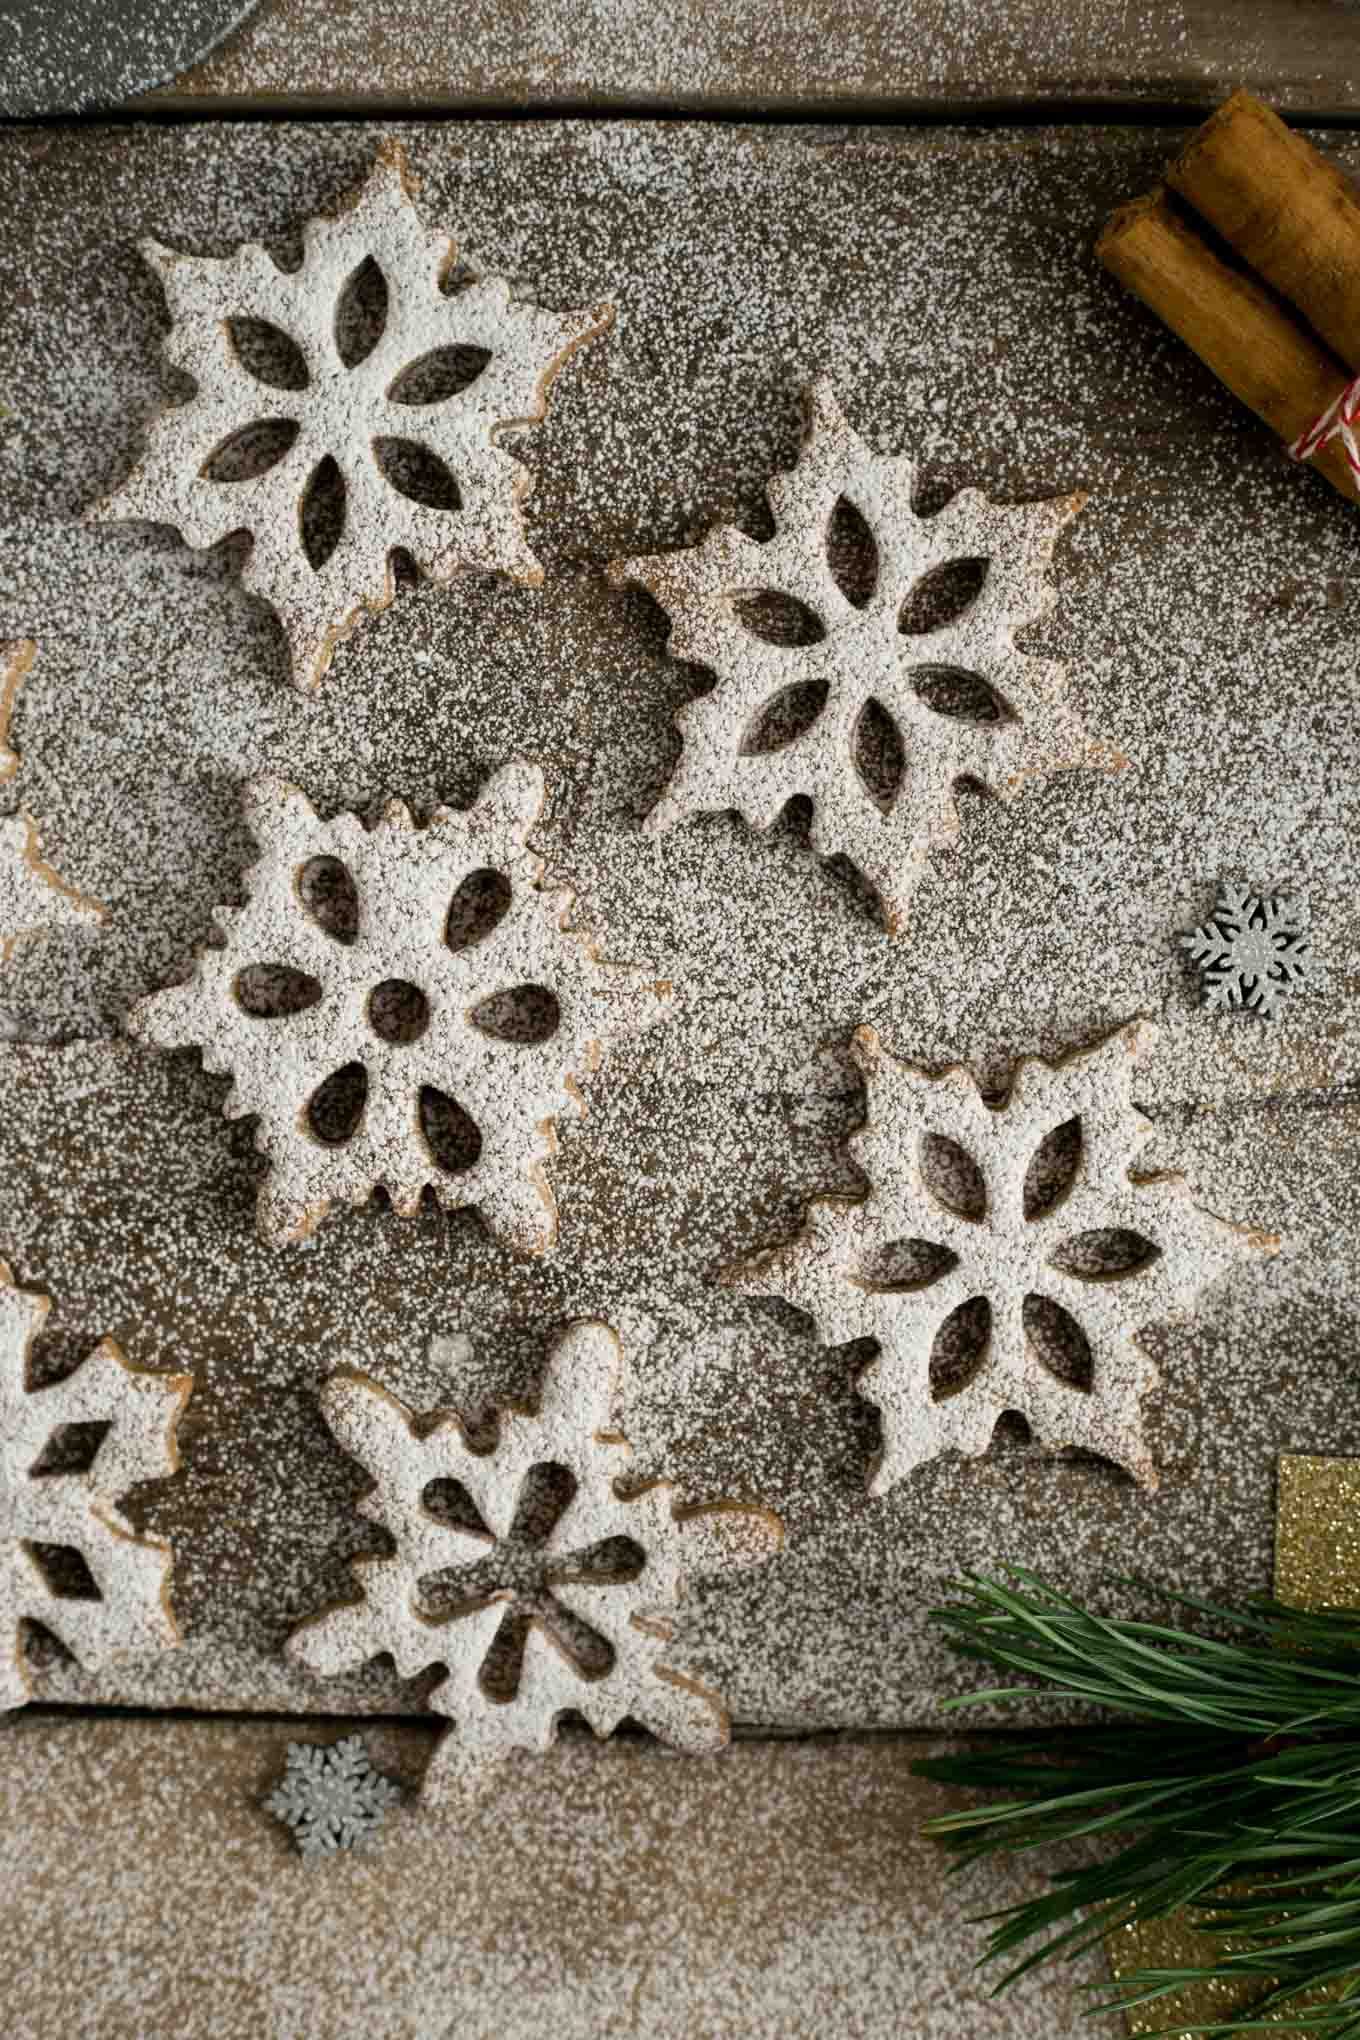 Cinnamon and Maple Snowflake Cookies. Delicious and fun to make cookies, ideal Christmas treat! #cookies #vegan #Christmas | via @annabanana.co